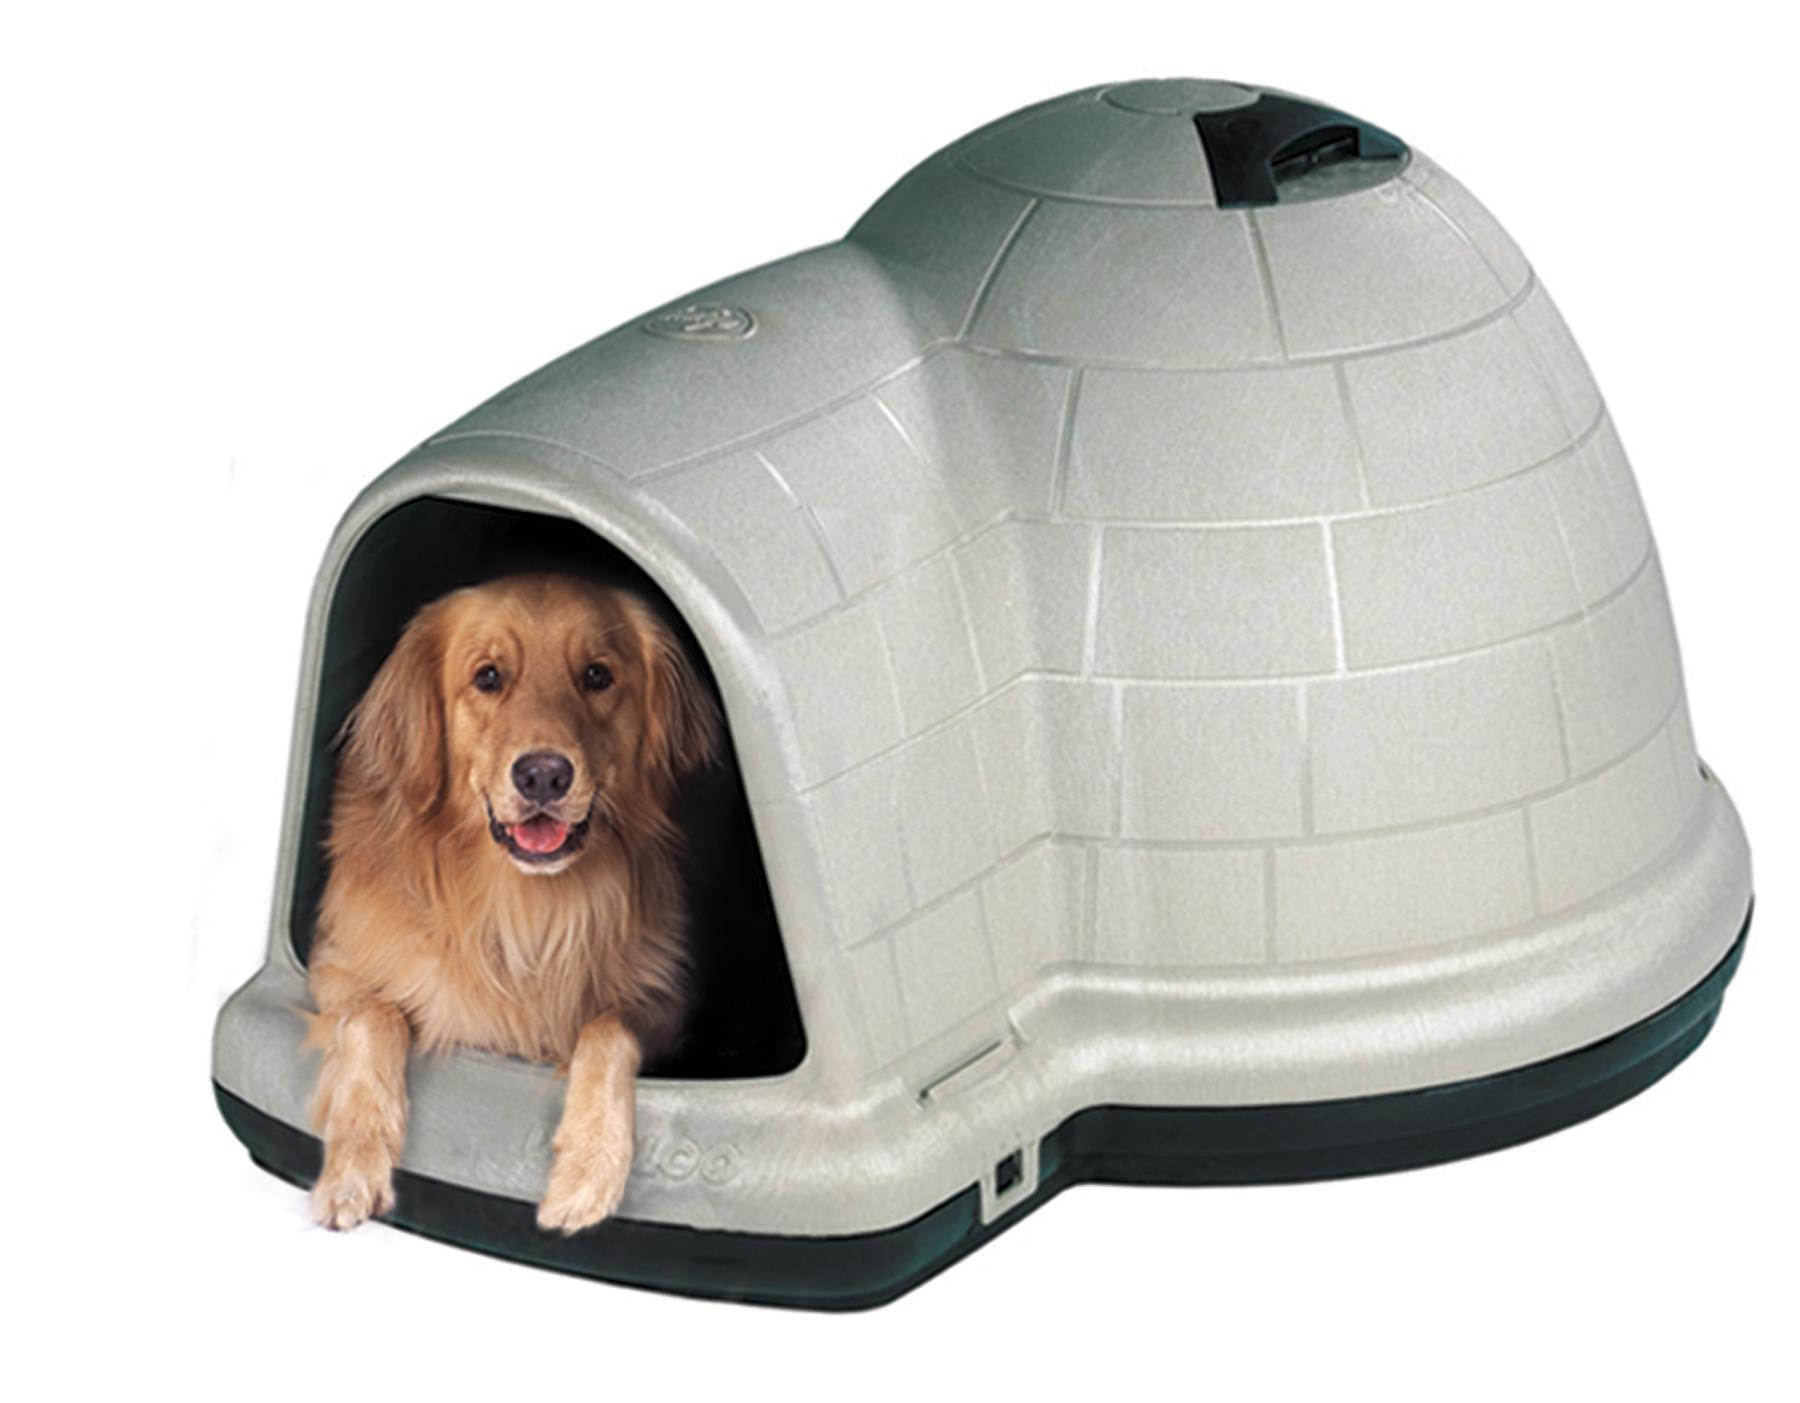 Amazon.com : INDIGO W/MICROBAN 50-90LBS : Igloo Dog : Pet Supplies on flowers for backyard, storage for backyard, small spaces for backyard, gardening ideas for backyard, easter ideas for backyard, garden for backyard, christmas decorations for backyard, lighting for backyard, fireplaces for backyard, landscaping ideas for backyard, birthday ideas for backyard, design for backyard, accessories for backyard, spring ideas for backyard, plants for backyard,